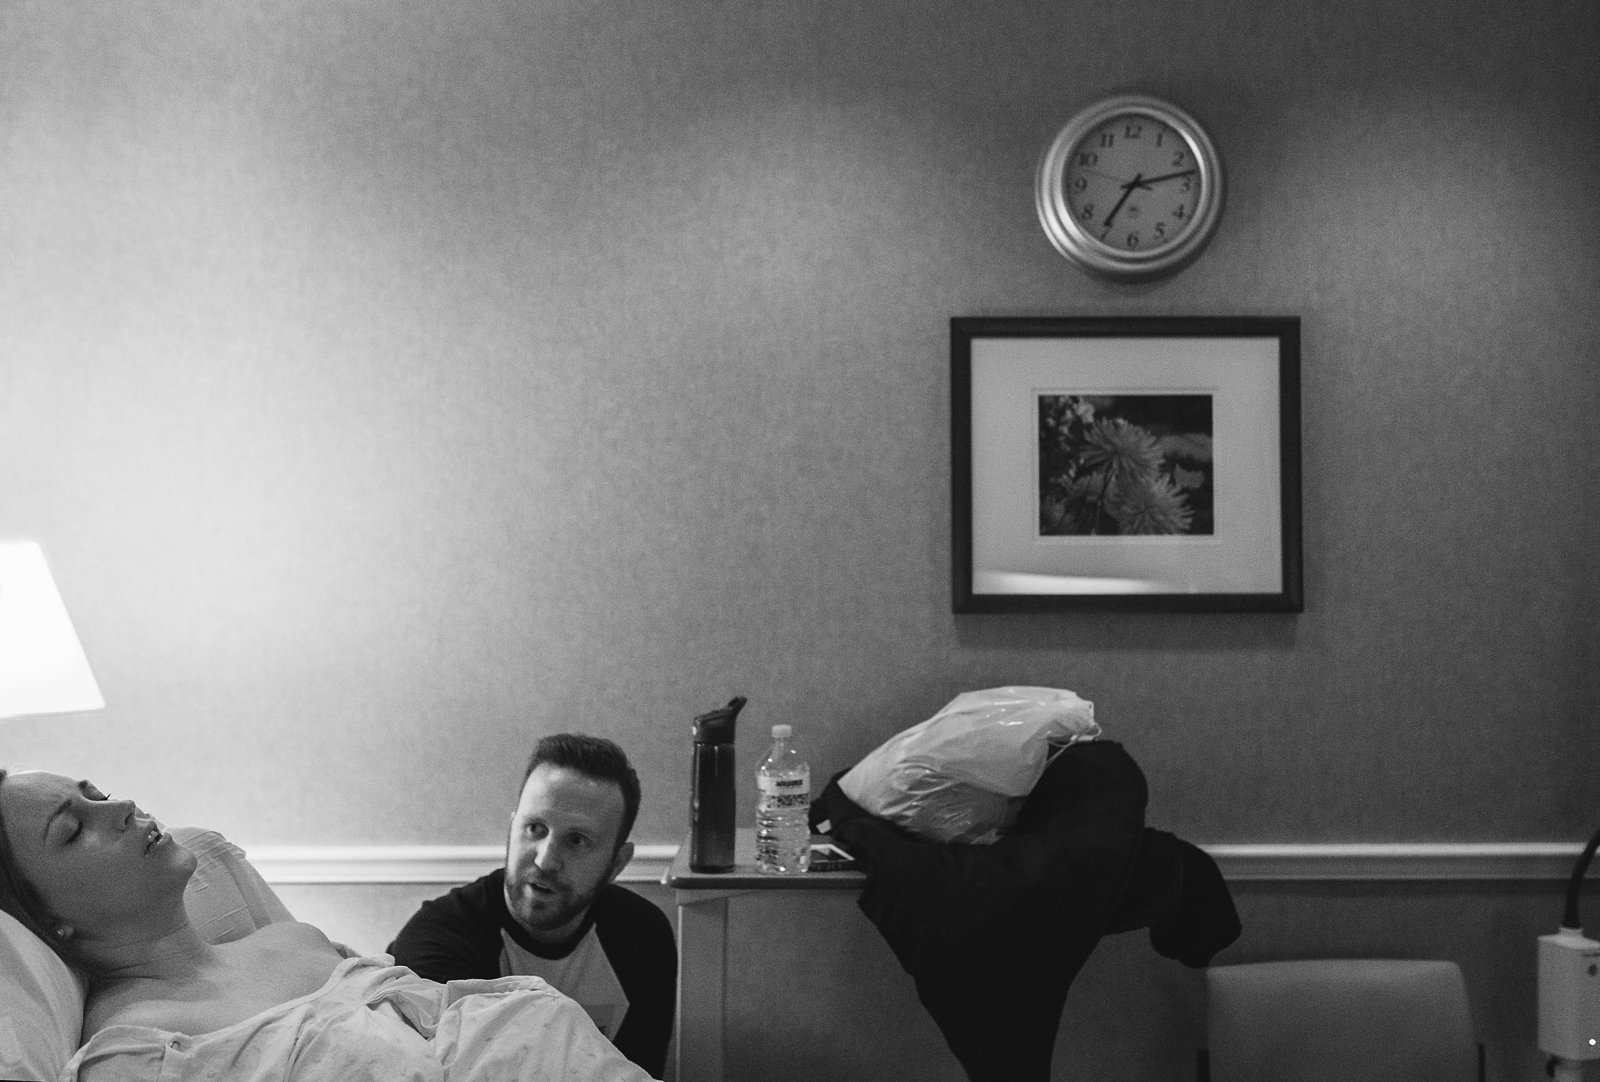 charlotte birth photographer jamie lucido captures documentary of laboring mother in hospital bed with father watching